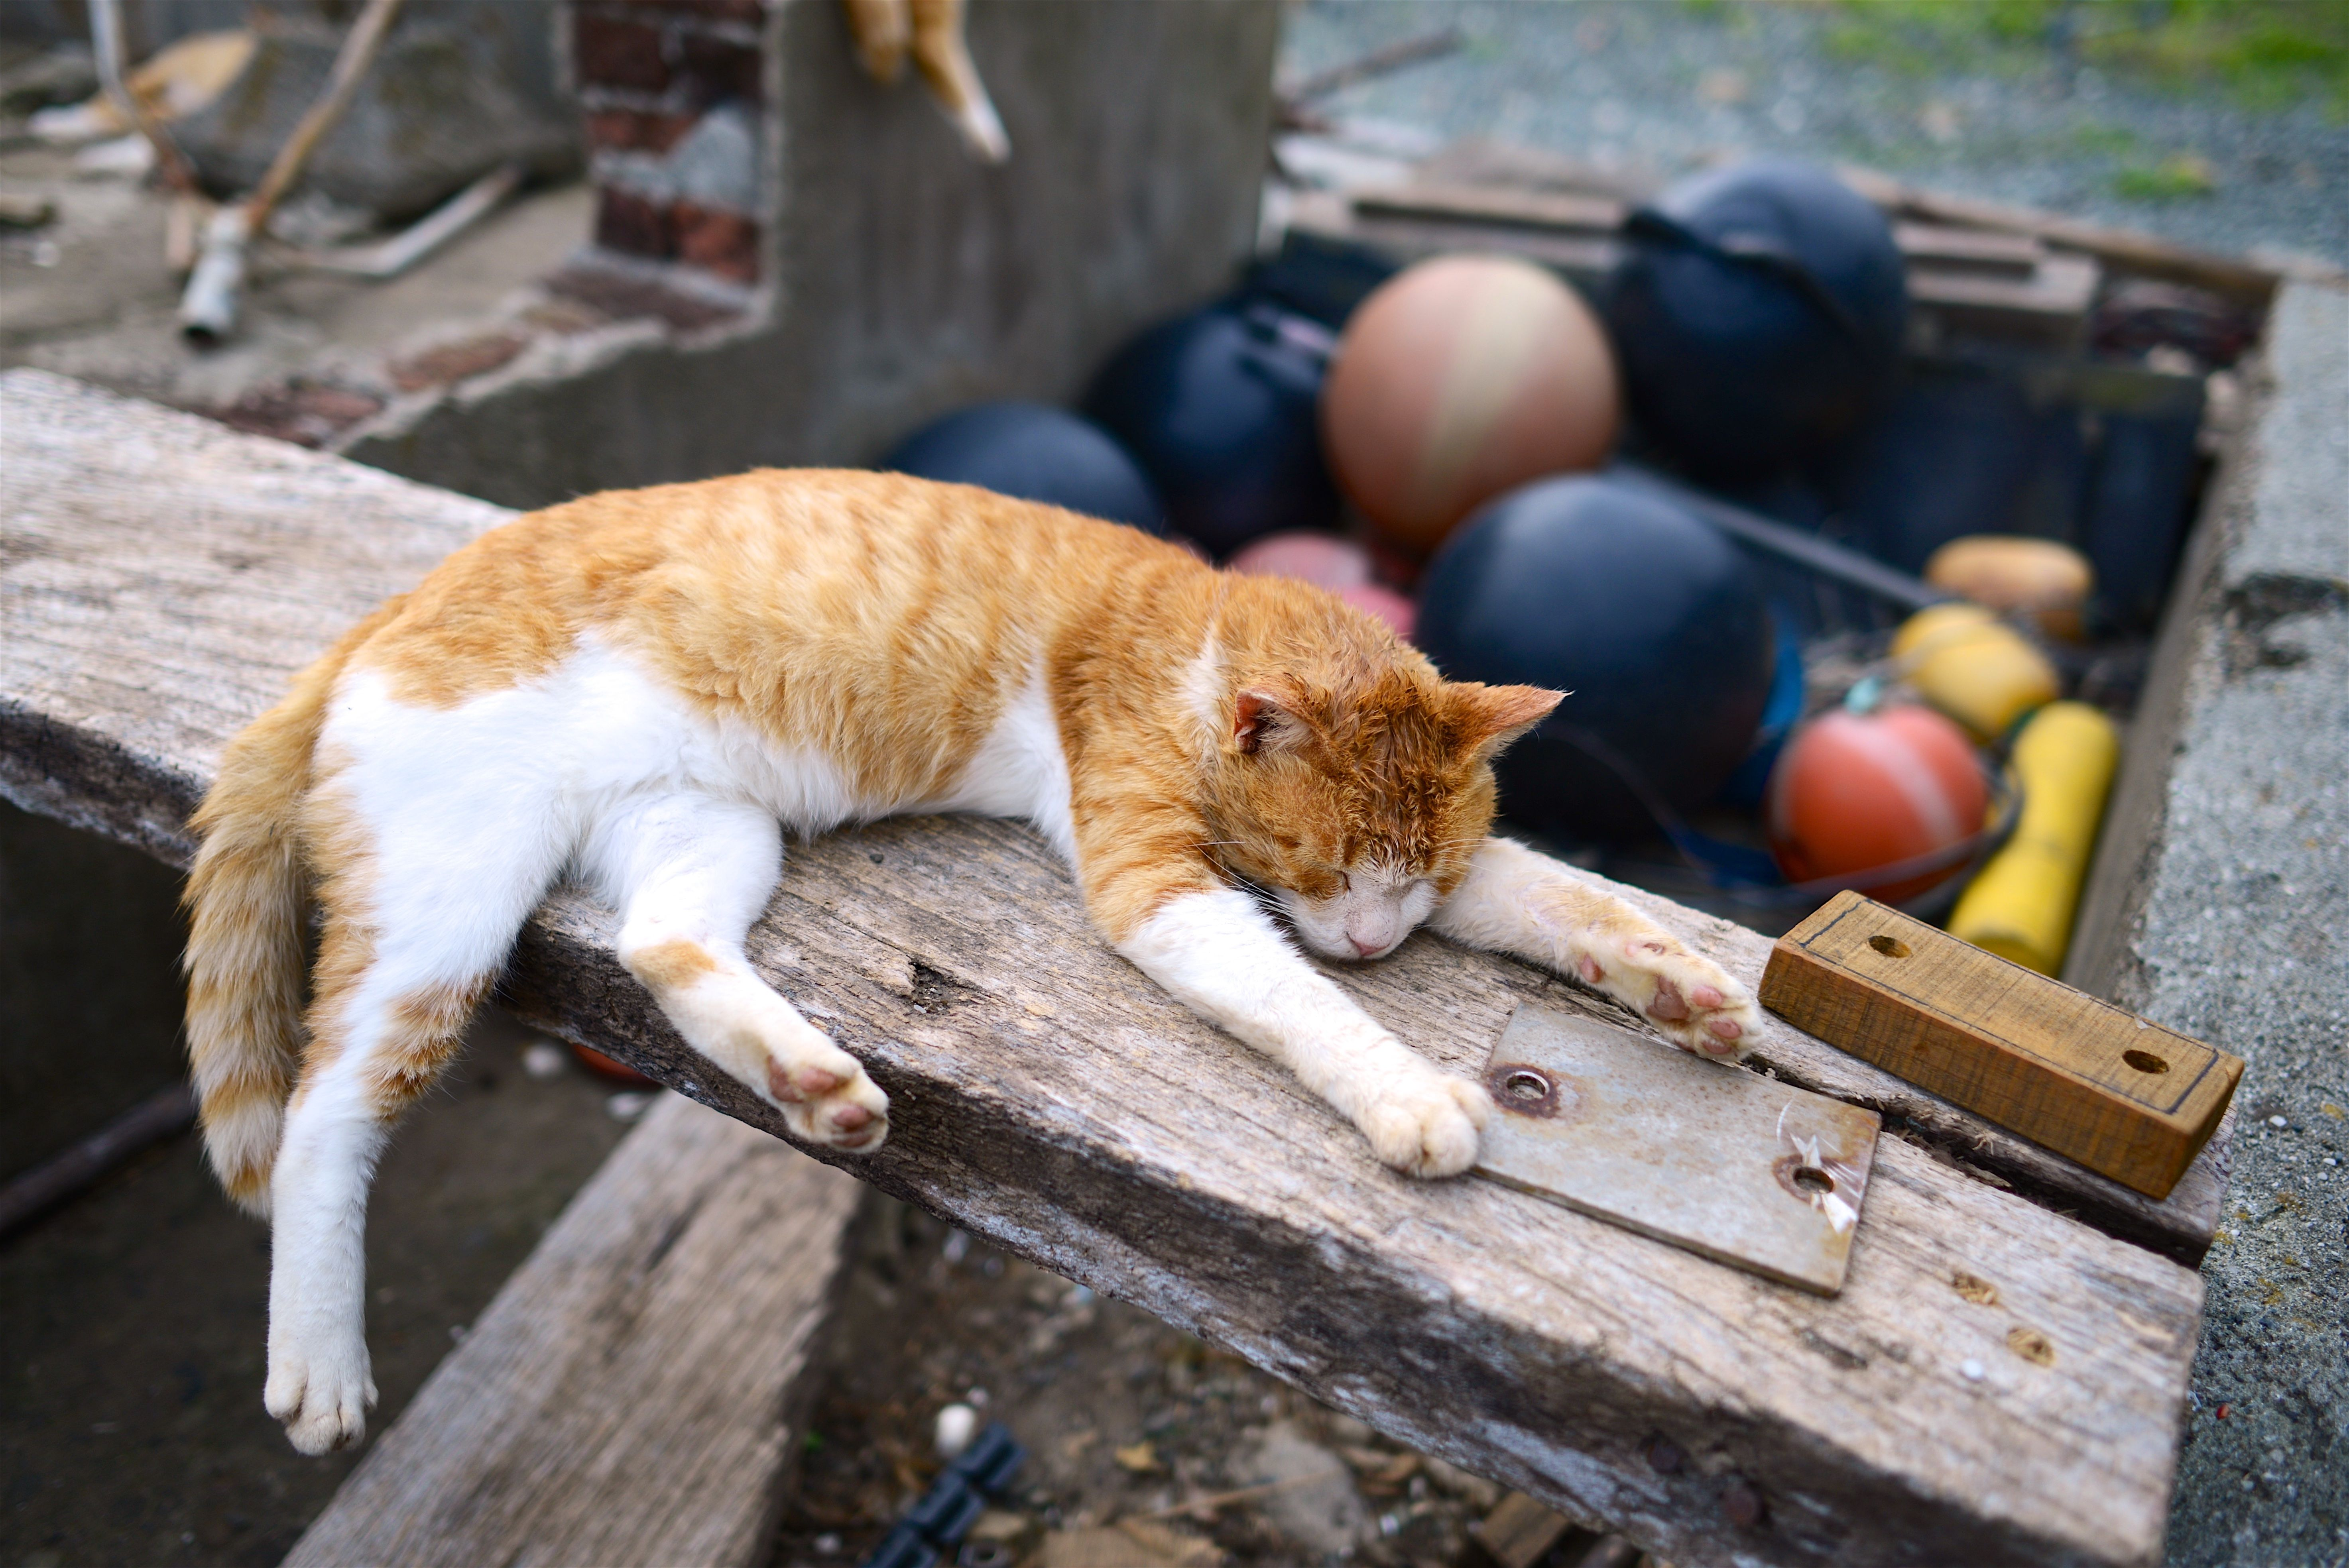 Animal Sounds To Make You Feel Less Alone The Ambient Mixer Blog Tabby Cat Cat Sleeping Tabby Cat Pictures